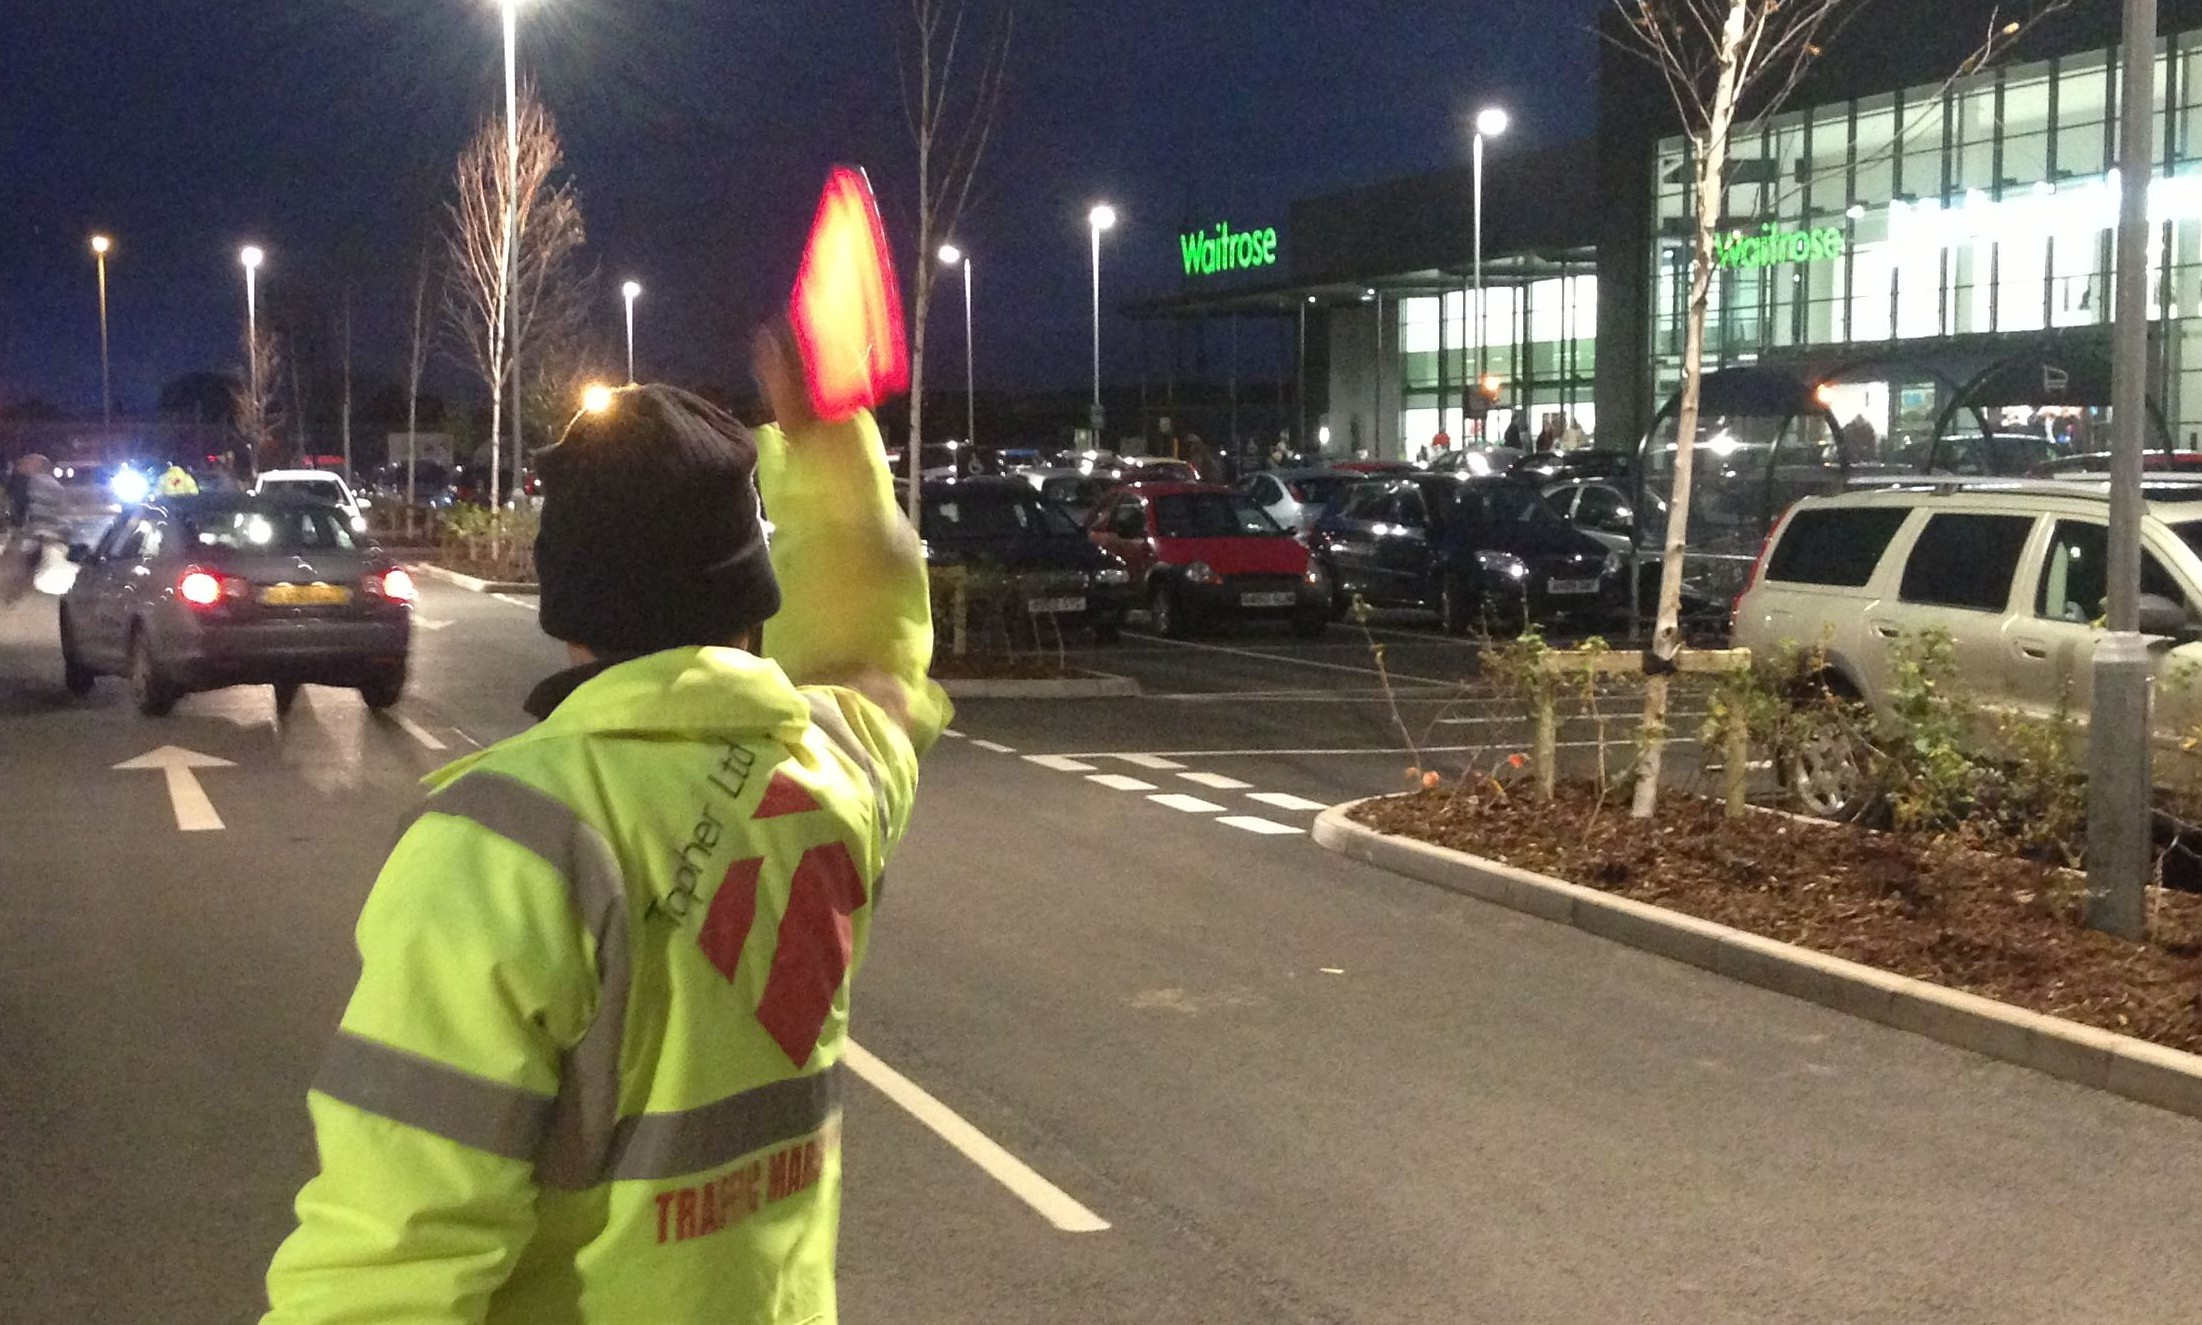 A Topher marshall at Waitrose